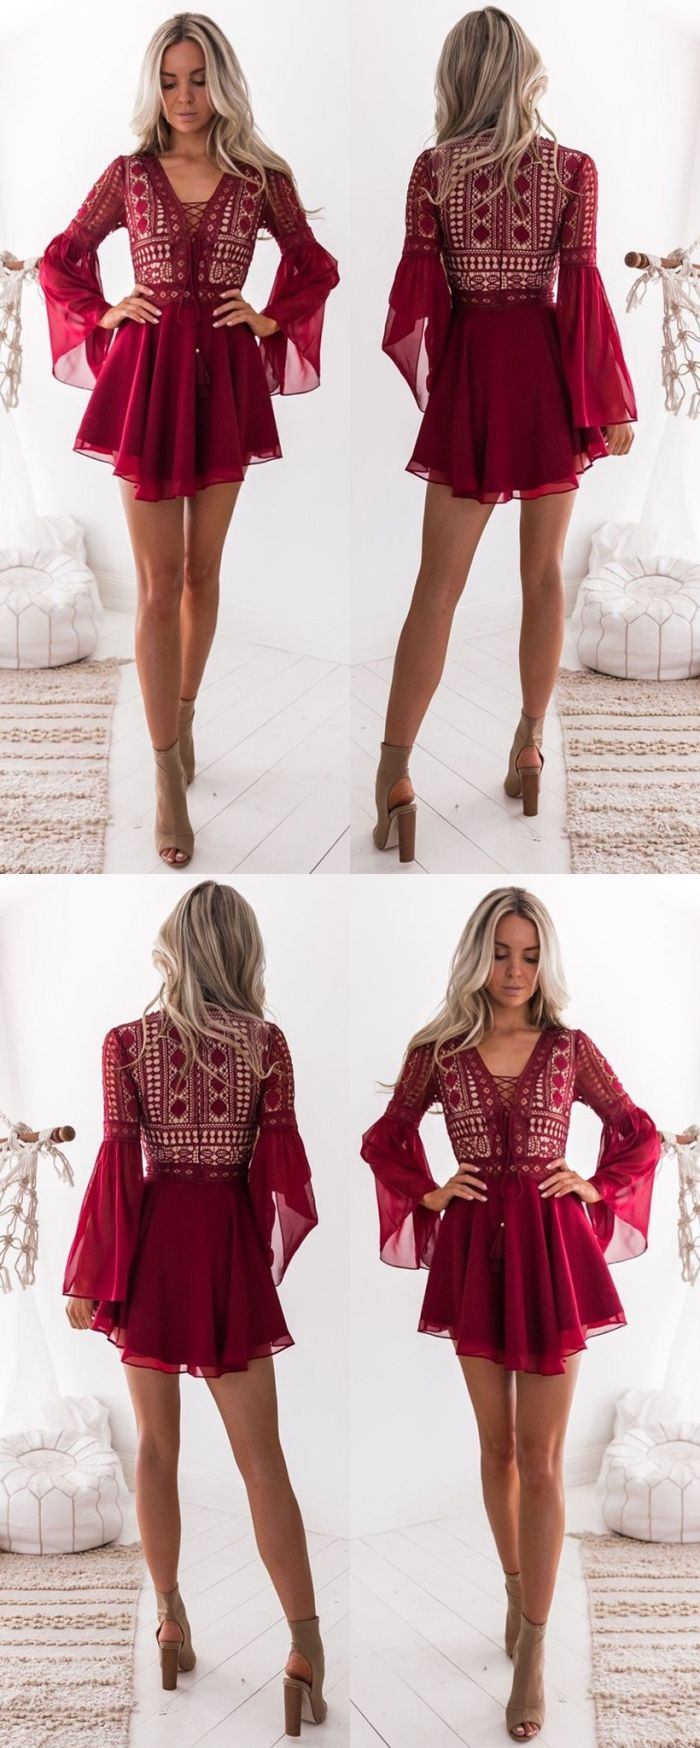 Long Sleeve Semi Formal Dresses For Teens Cheap Burgundy Chiffon Homecoming Dre Semi Formal Dresses For Teens Formal Dresses For Teens Lace Dress With Sleeves [ 1748 x 700 Pixel ]